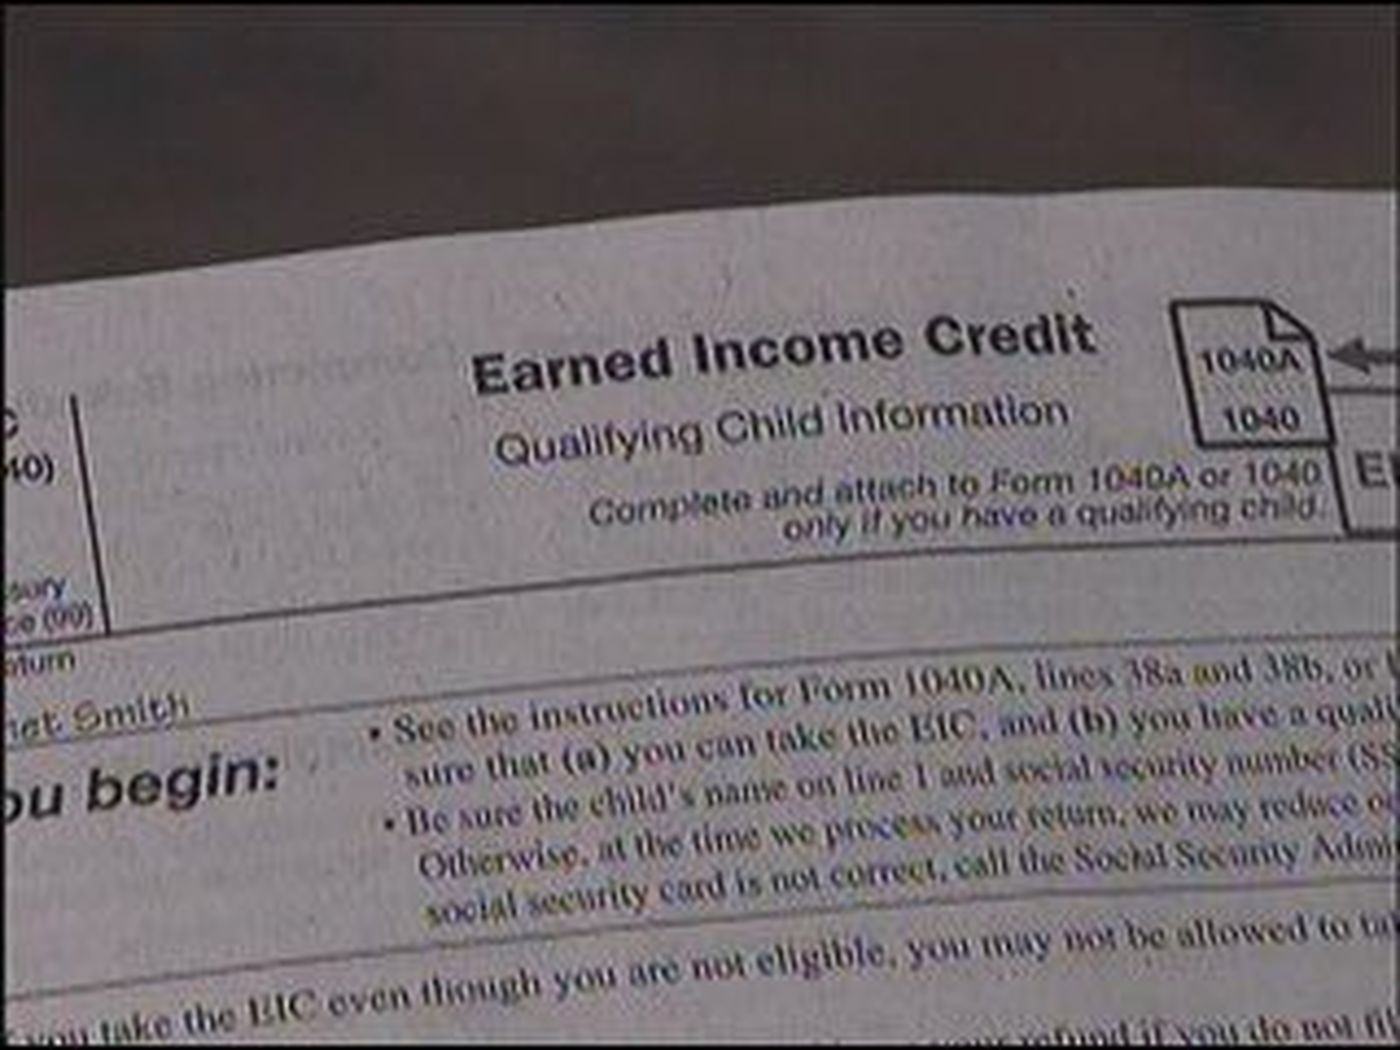 Irs Forms 1040a 2012 Instructions